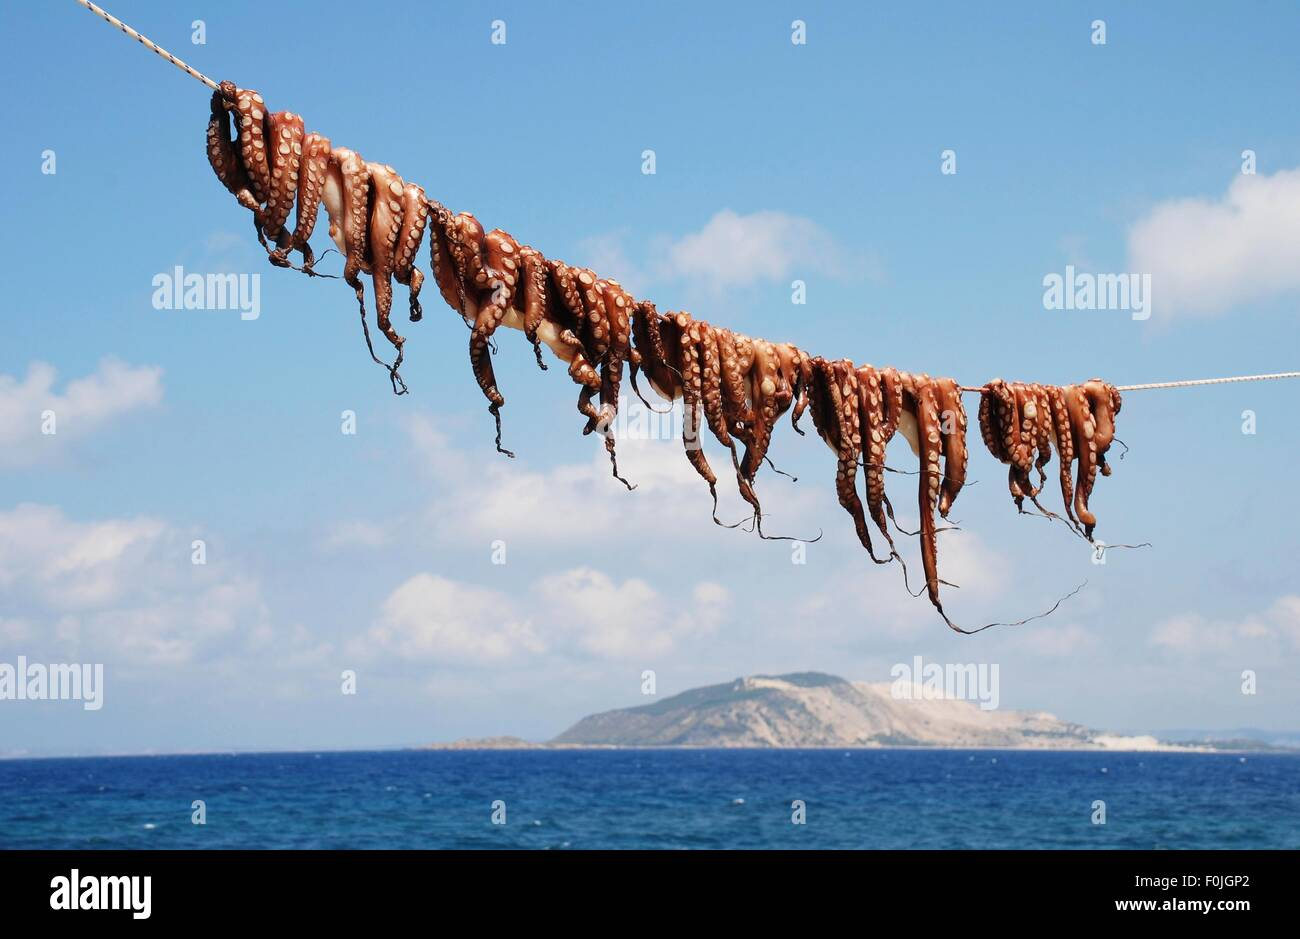 A row of Octopuses drying on a line at Mandraki on the Greek island of Nisyros. - Stock Image